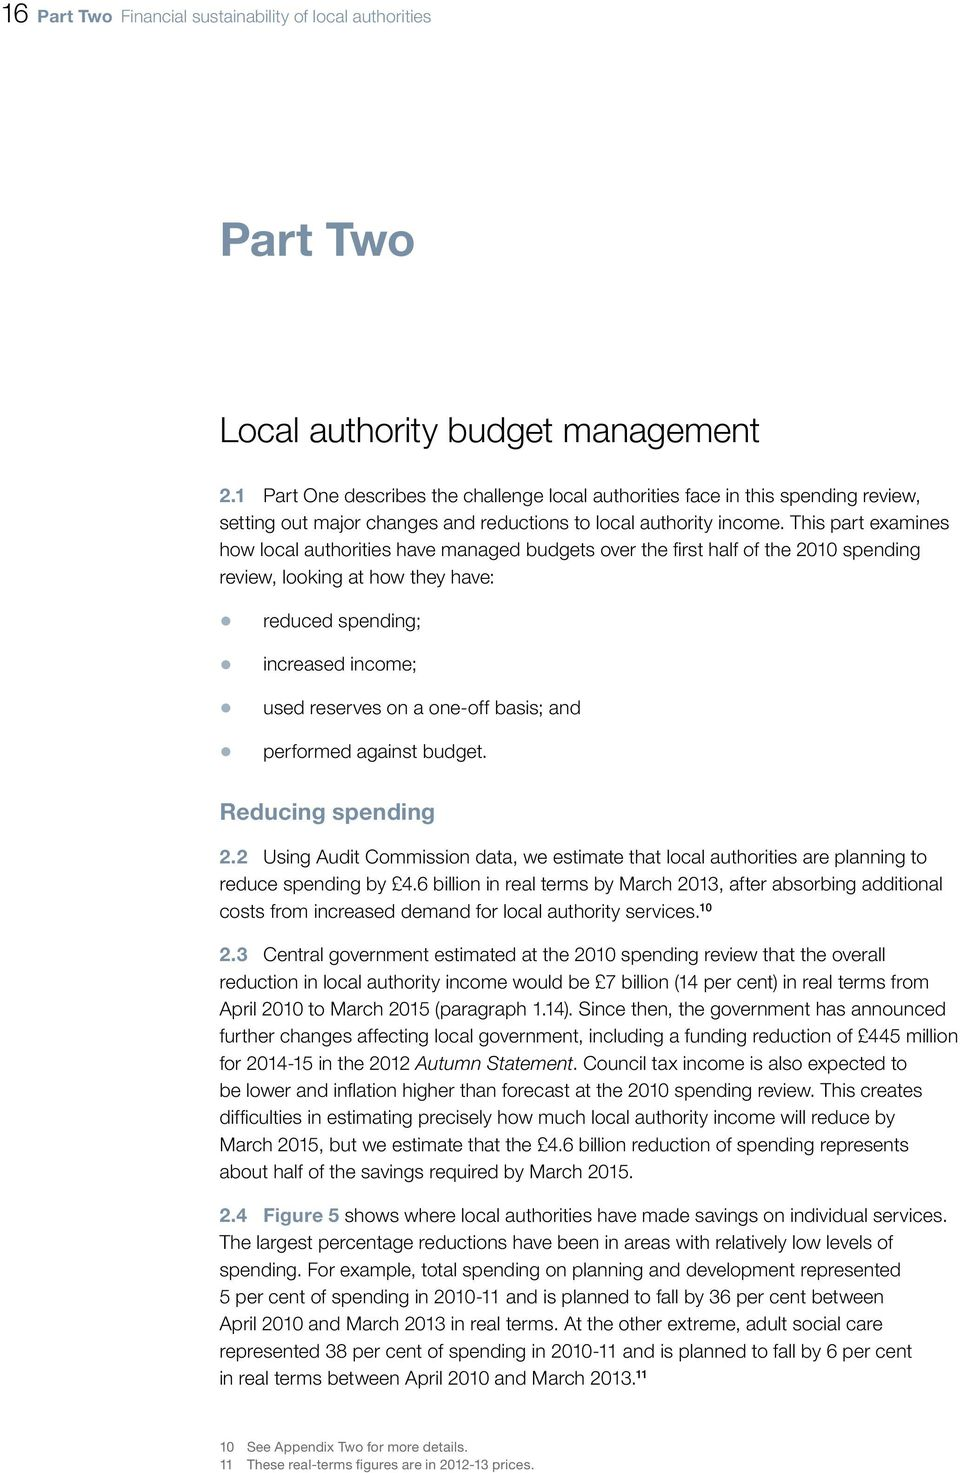 This part examines how local authorities have managed budgets over the first half of the 2010 spending review, looking at how they have: reduced spending; increased income; used reserves on a one-off